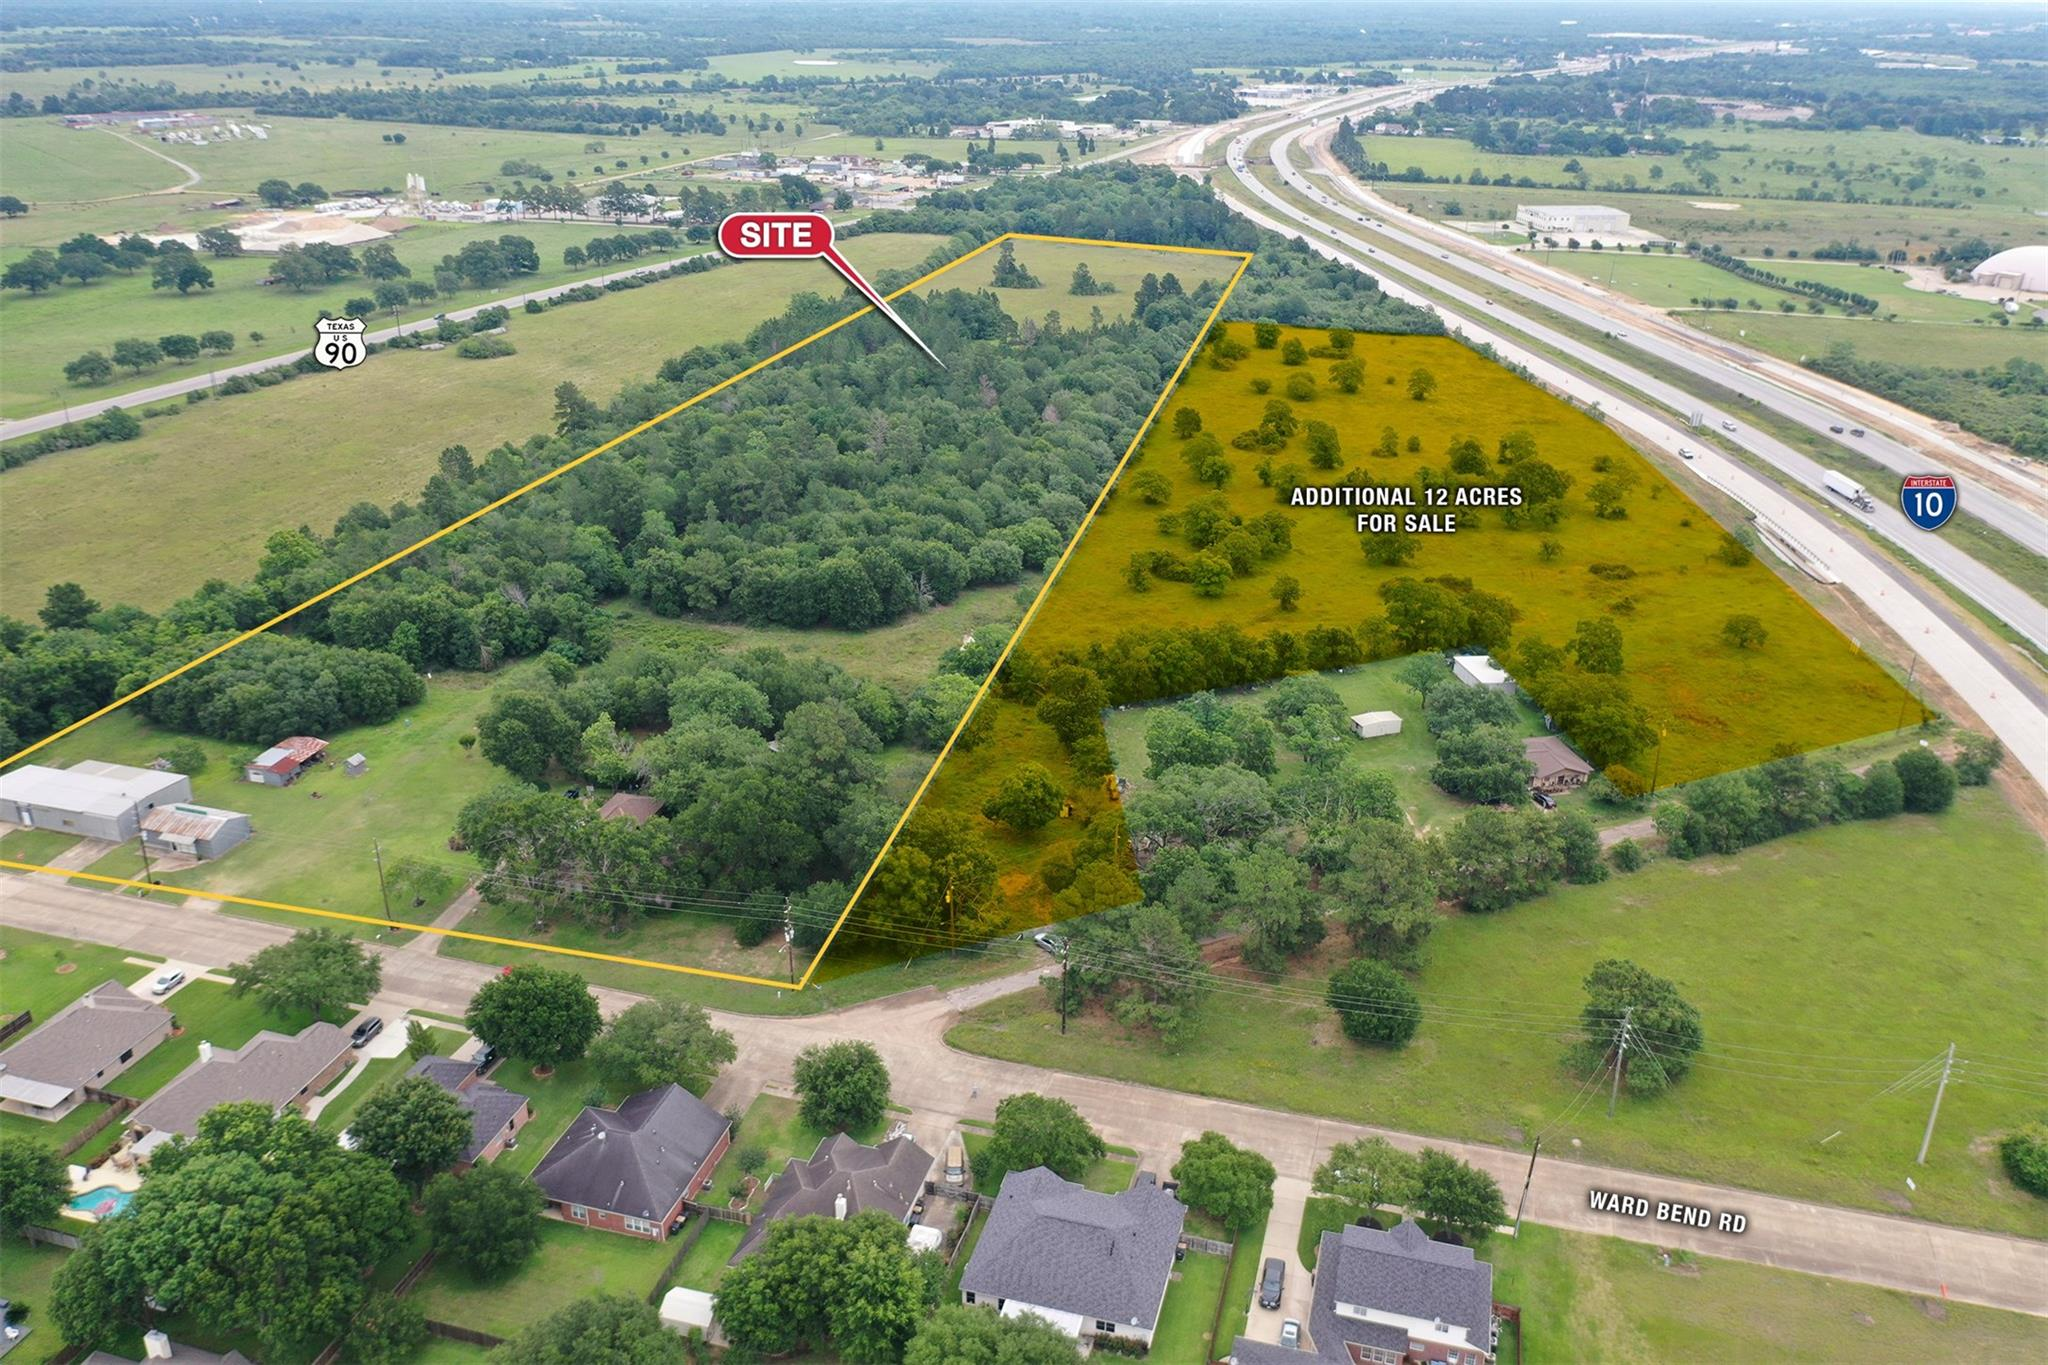 1408 Ward Bend Road Property Photo - Sealy, TX real estate listing